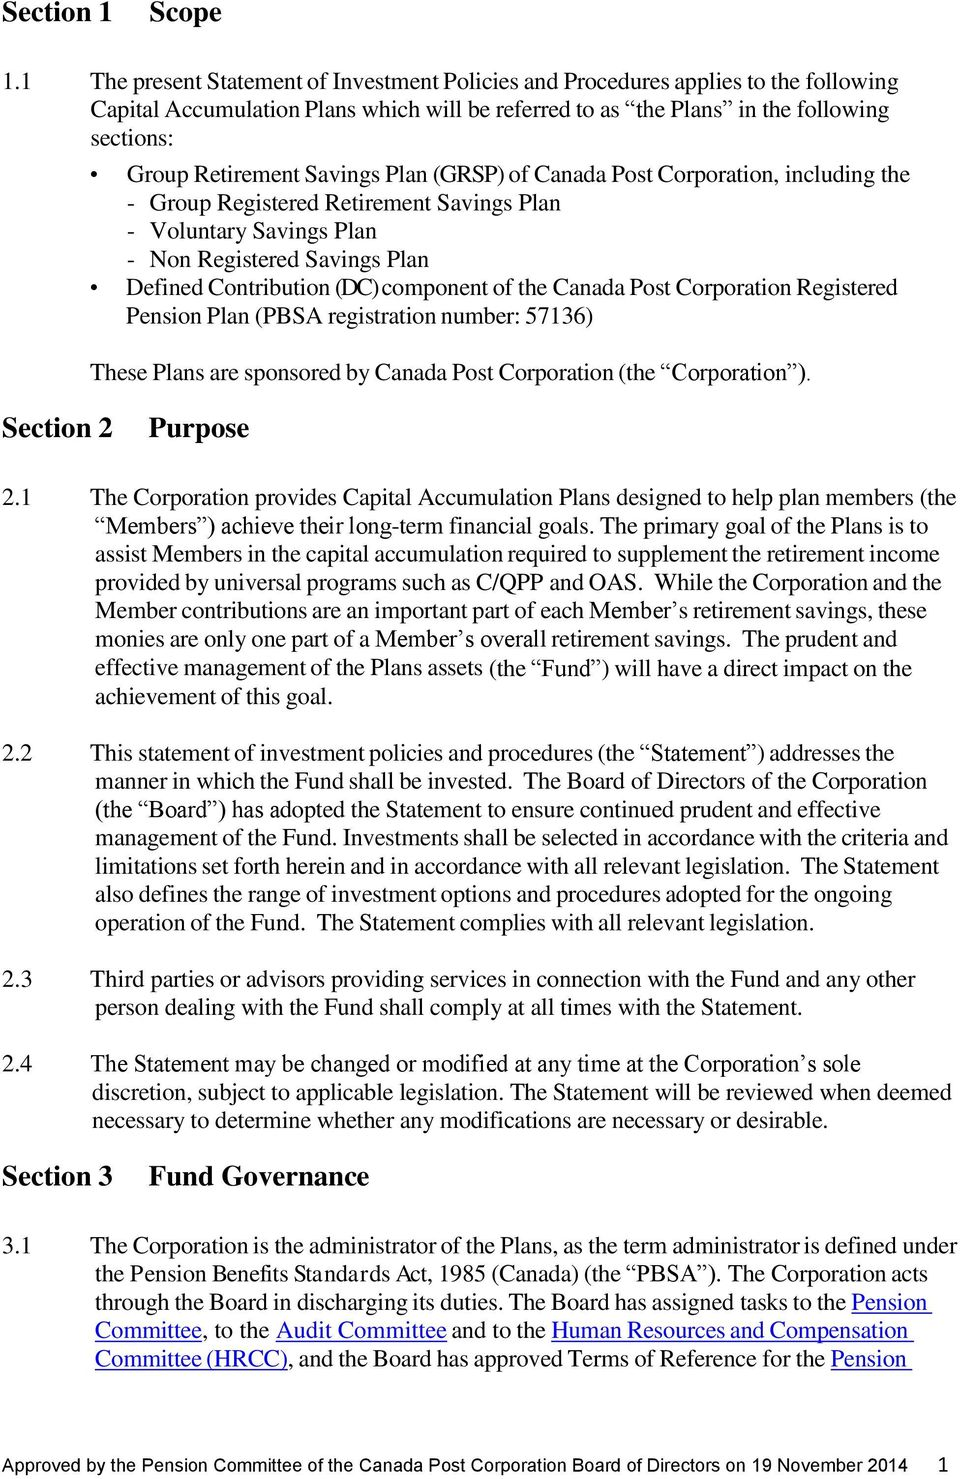 Savings Plan (GRSP) of Canada Post Corporation, including the - Group Registered Retirement Savings Plan - Voluntary Savings Plan - Non Registered Savings Plan Defined Contribution (DC) component of